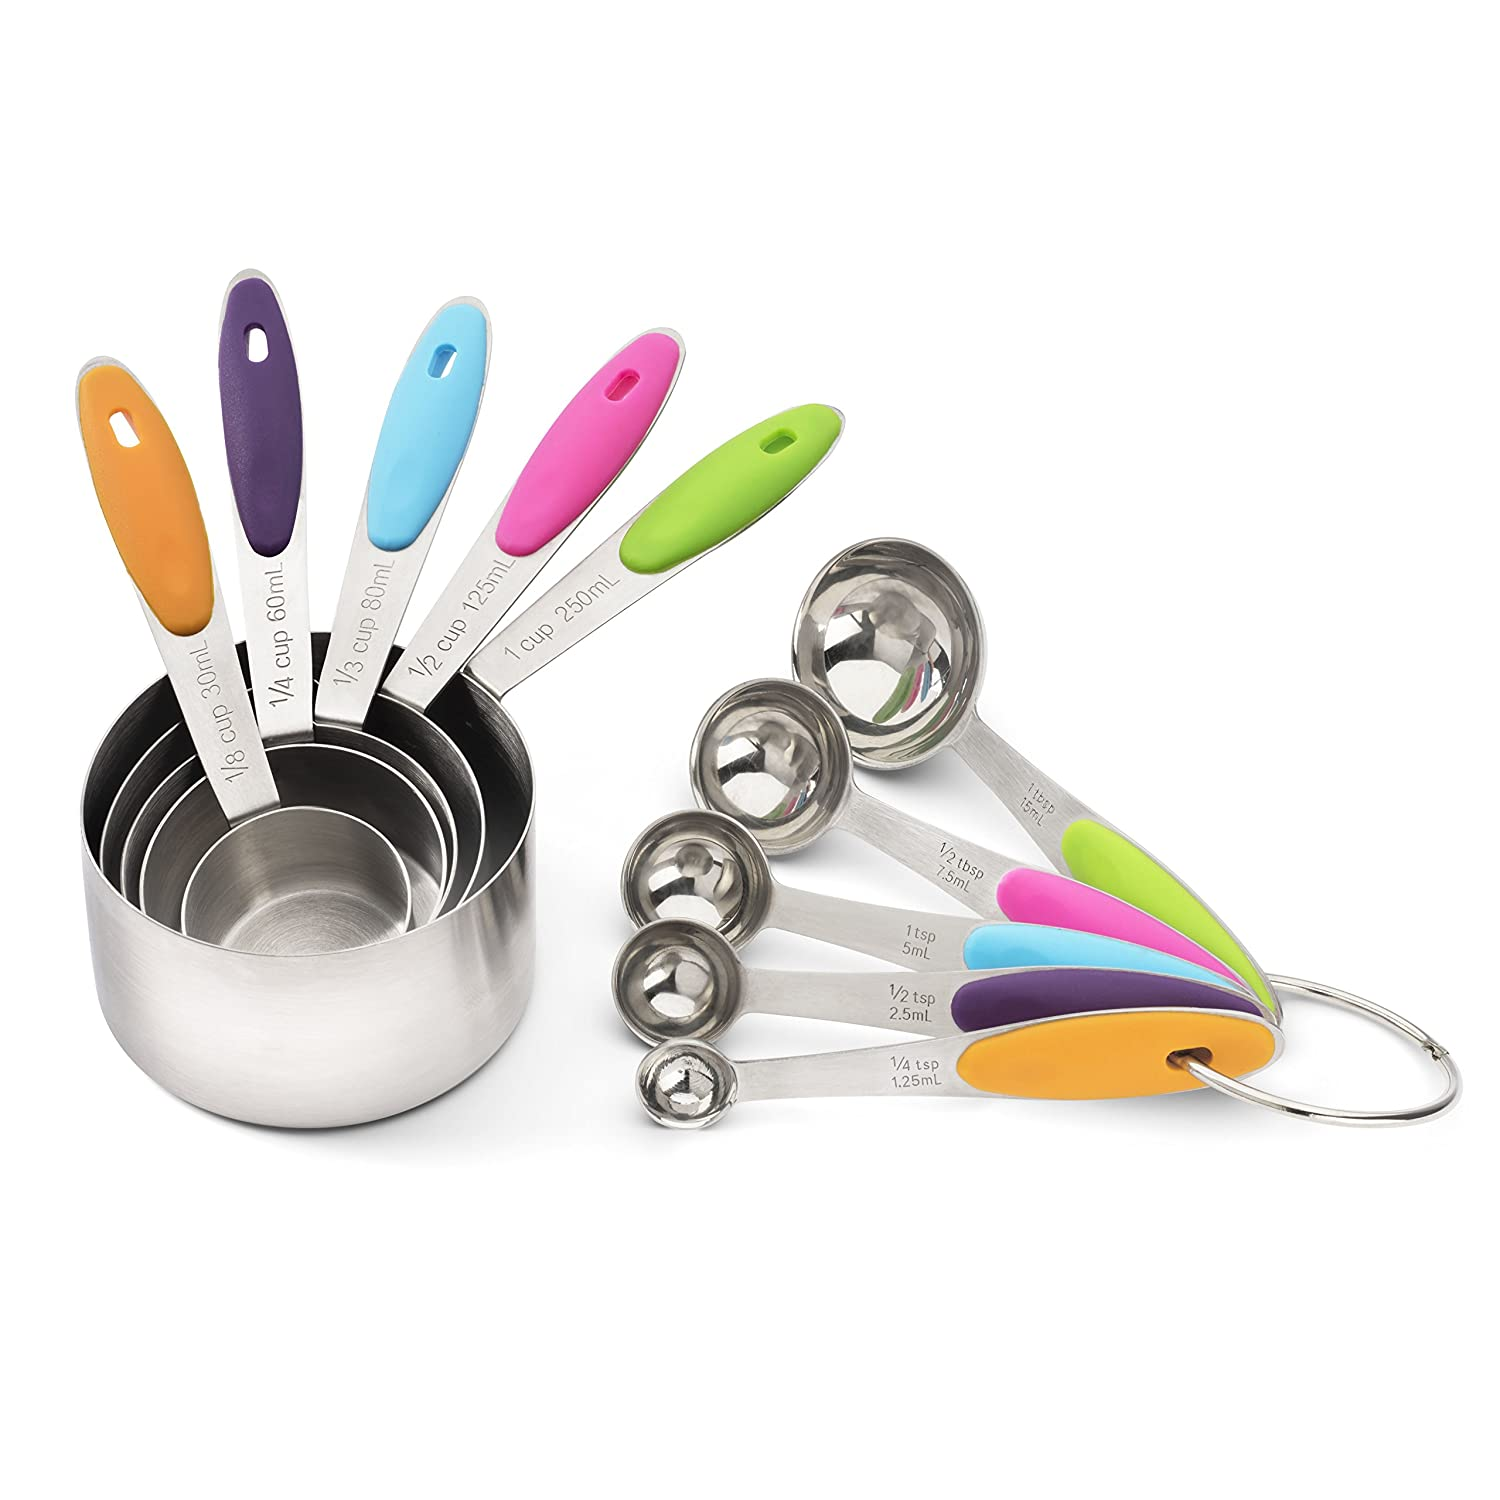 Decorative Measuring Spoons And Cups Amazoncom Measuring Cup And Measuring Spoon Set In Stainless